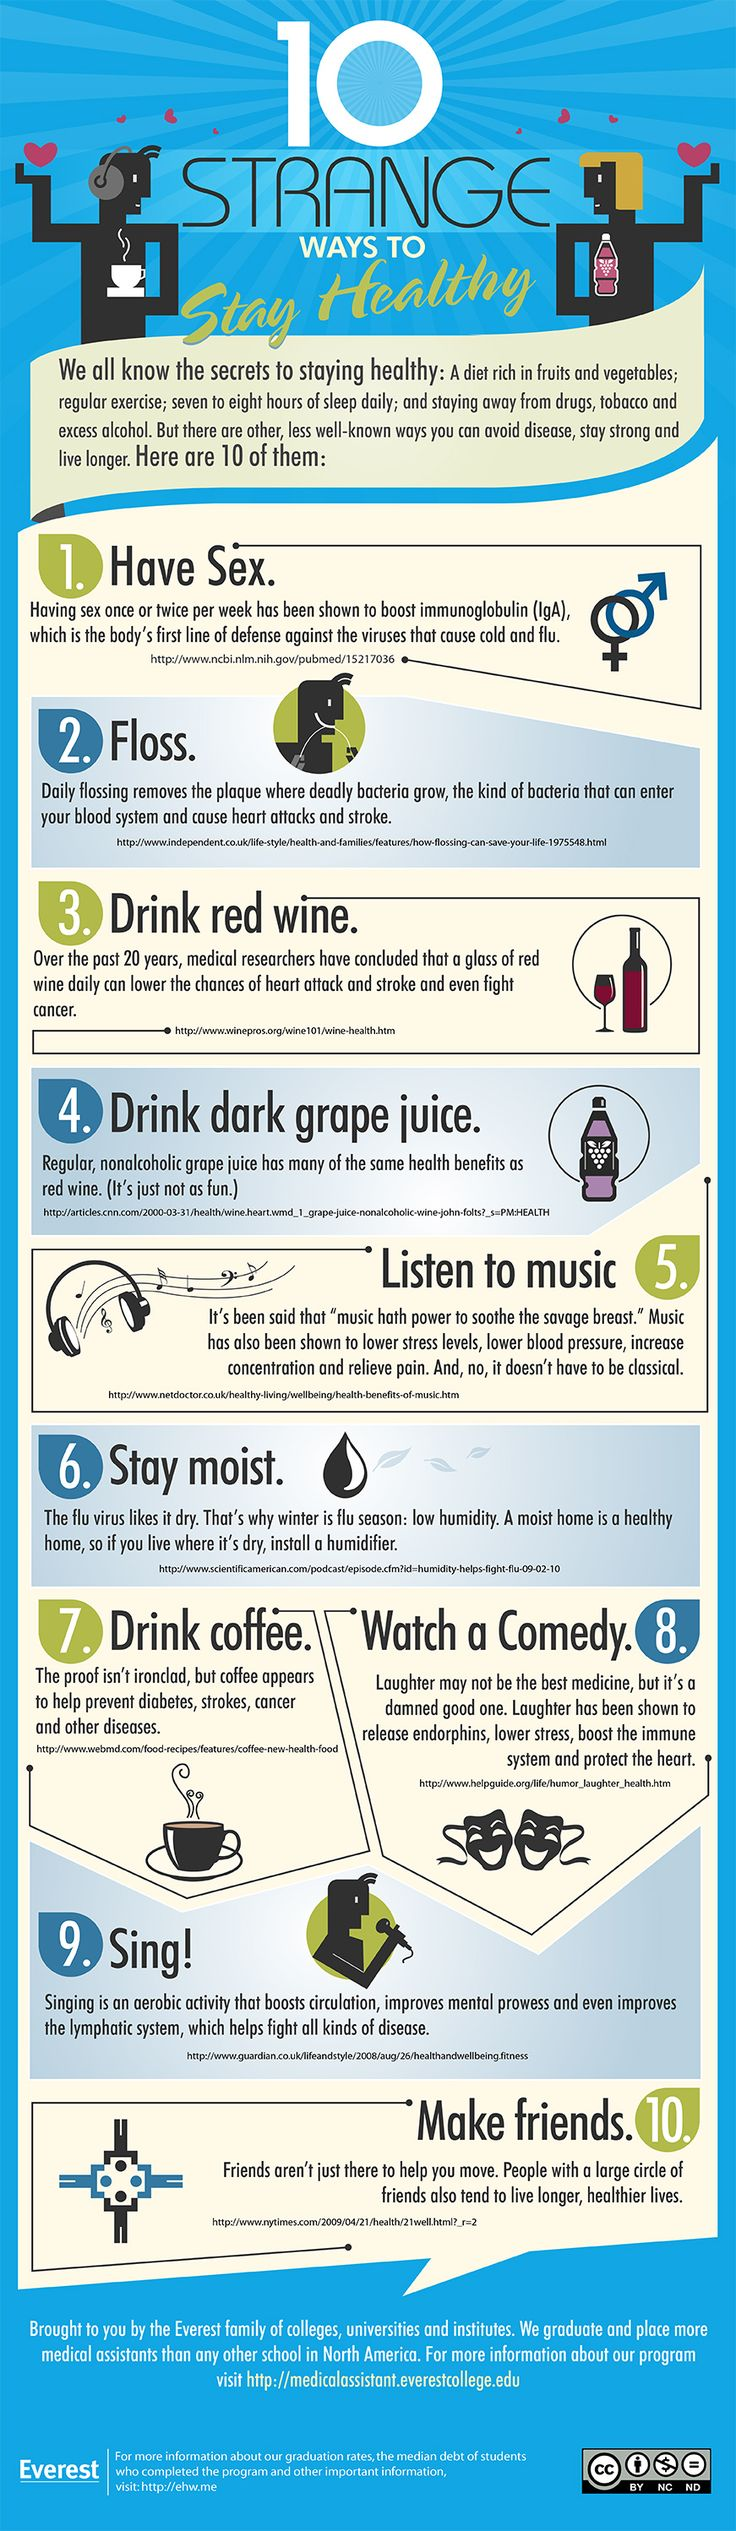 10 Strange Ways To Stay Healthy  I don't have friends to hang out with. Unfortunately, no man to have sex with; the other eight I can do.